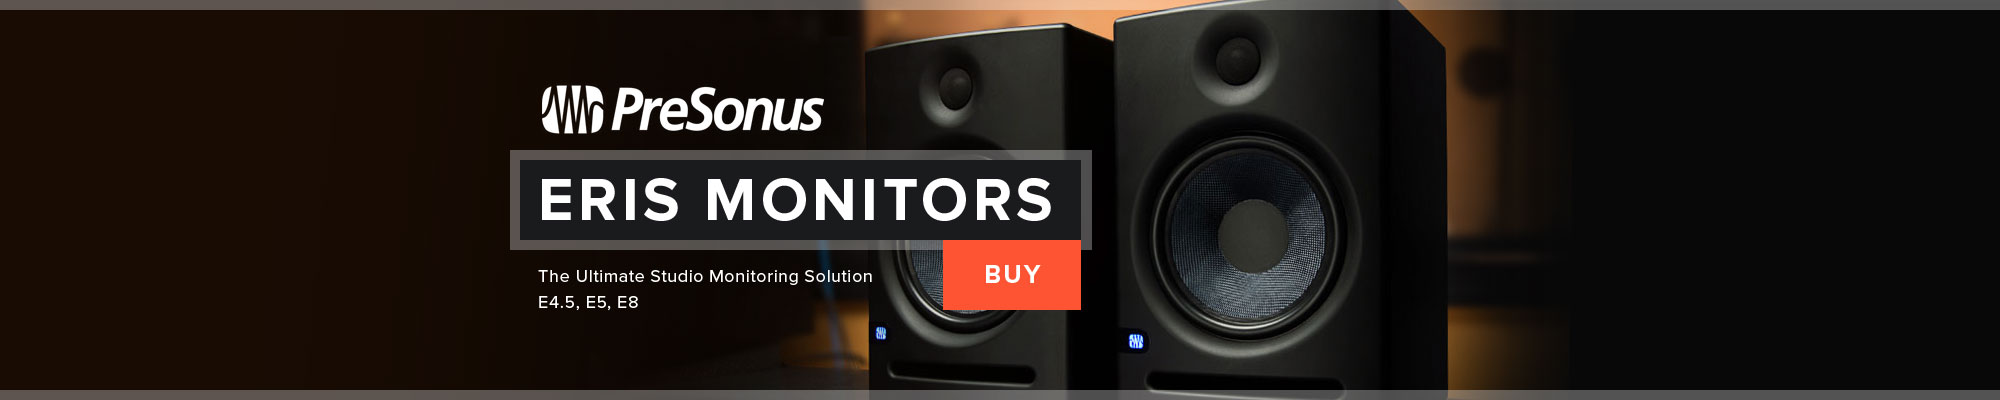 Eris Monitors